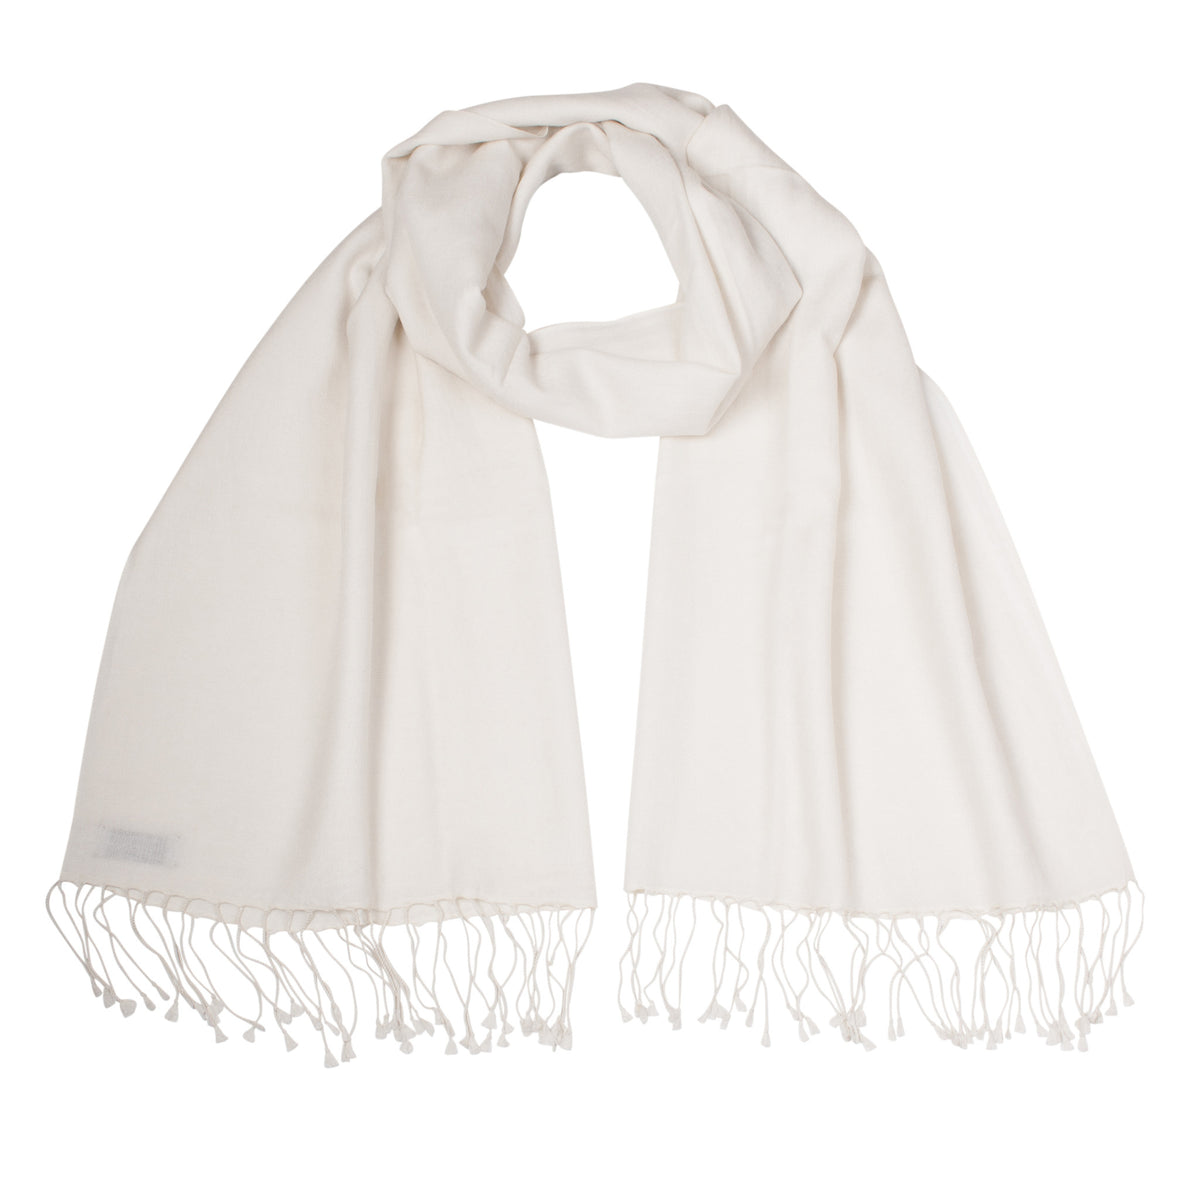 Cream | Off White Pashsmina Stole | buy now at The Cashmere Choice London